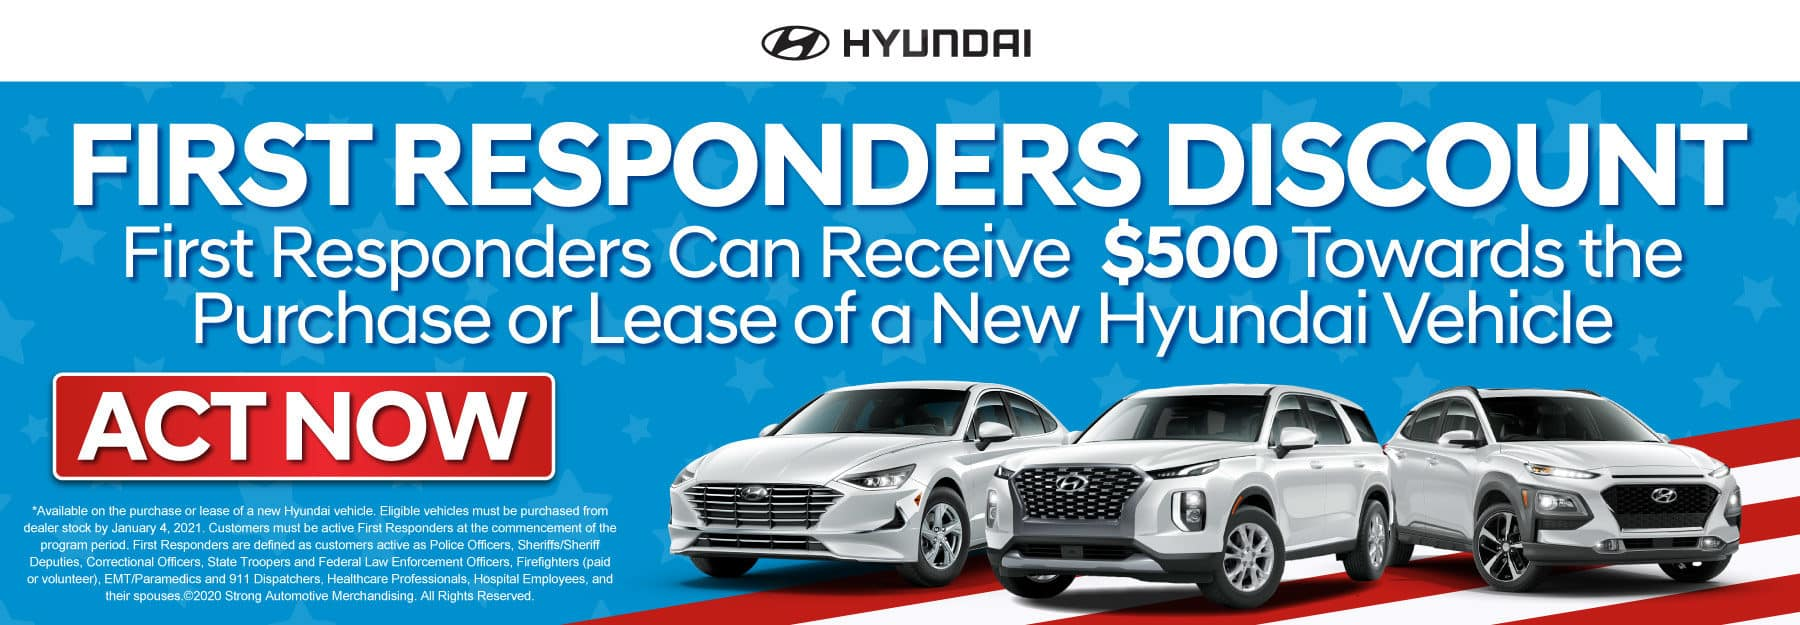 First Responders Can Receive $500 Towards the Purchase or Lease of a New Hyundai Vehicle - Click to Apply